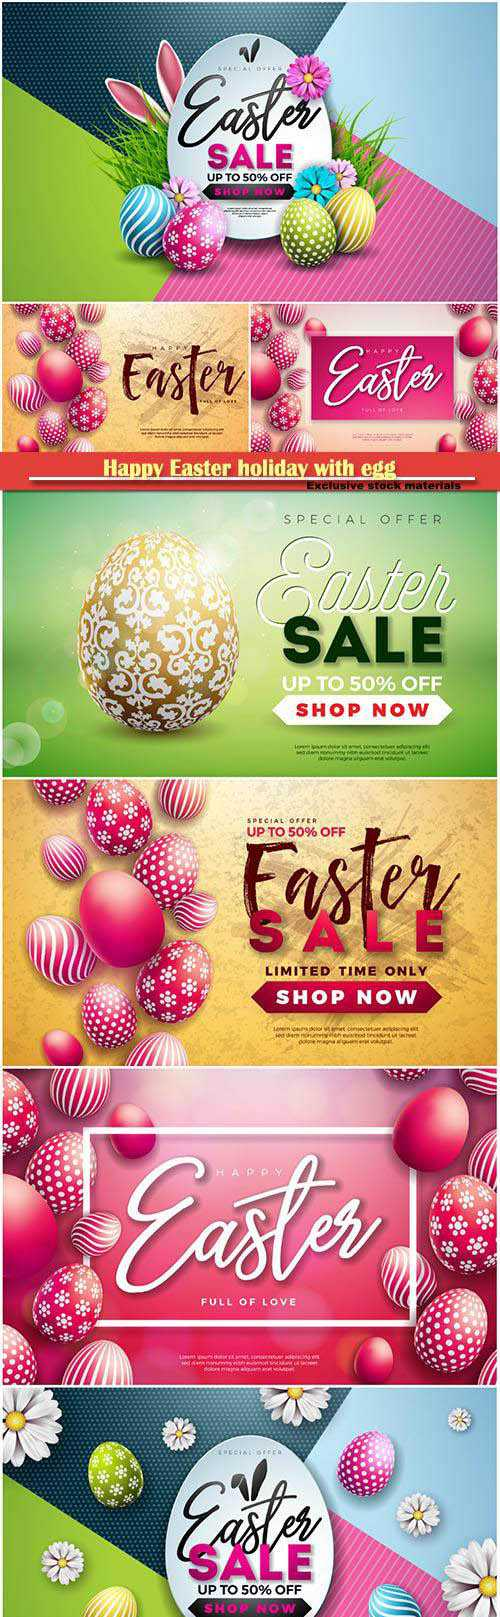 Happy Easter holiday with egg and spring flower vector illustration # 2